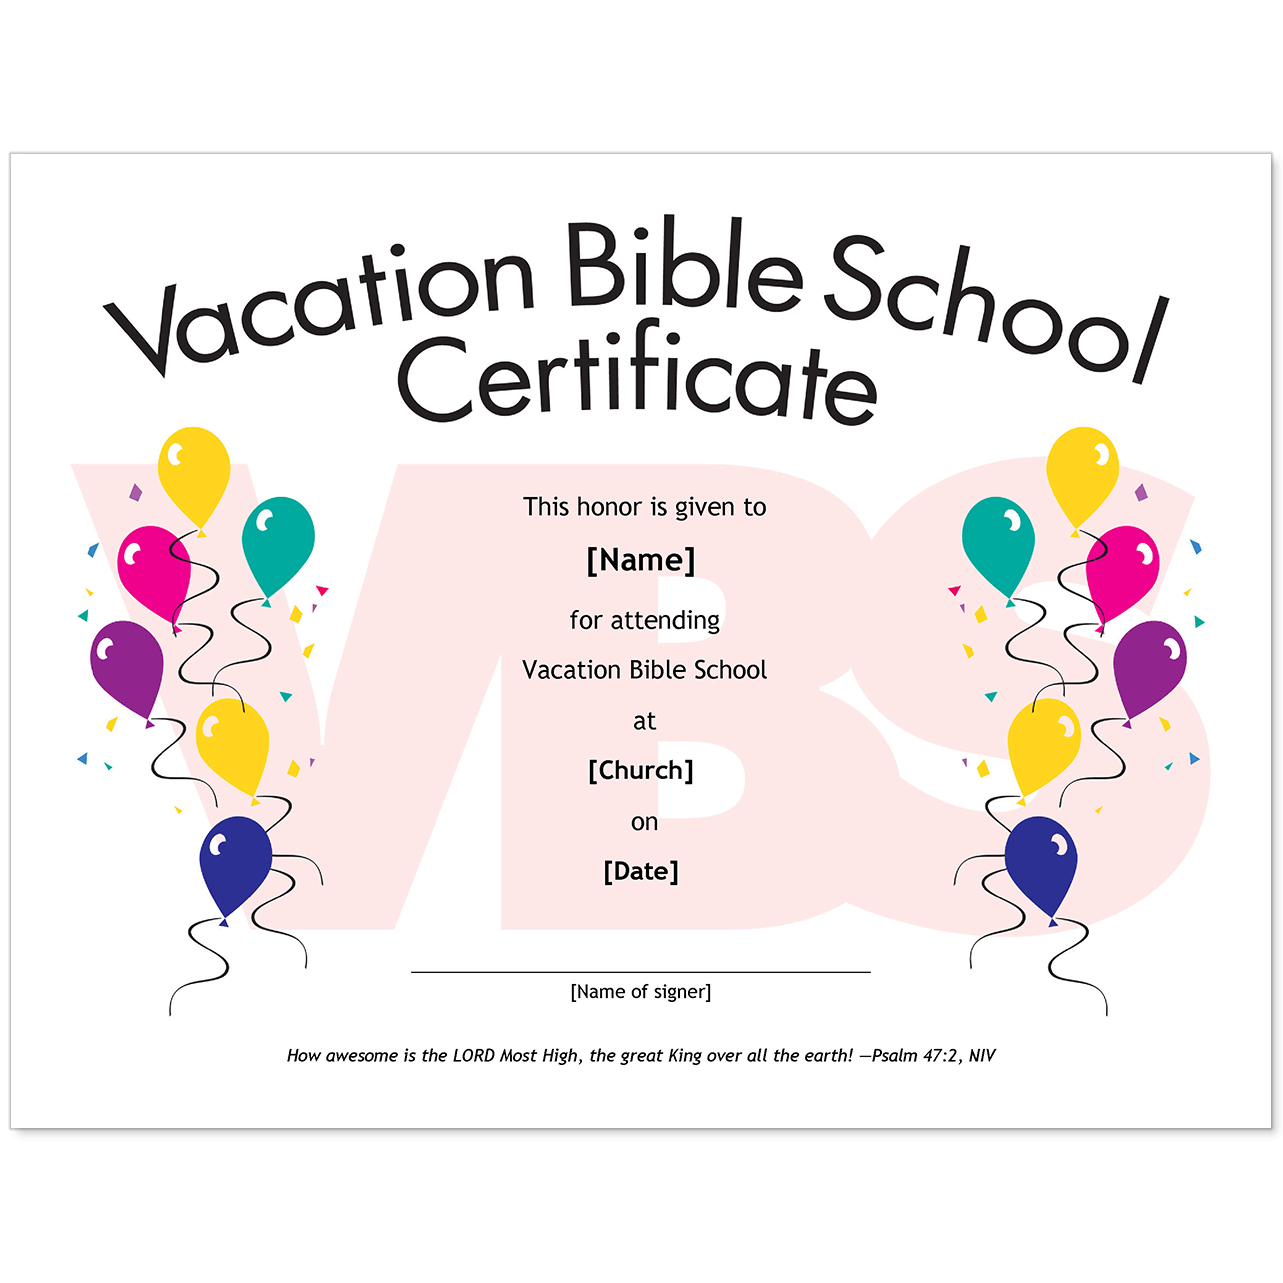 Vacation Bible School Certificate Templates - Condo-Financials - Free Printable Vacation Bible School Materials